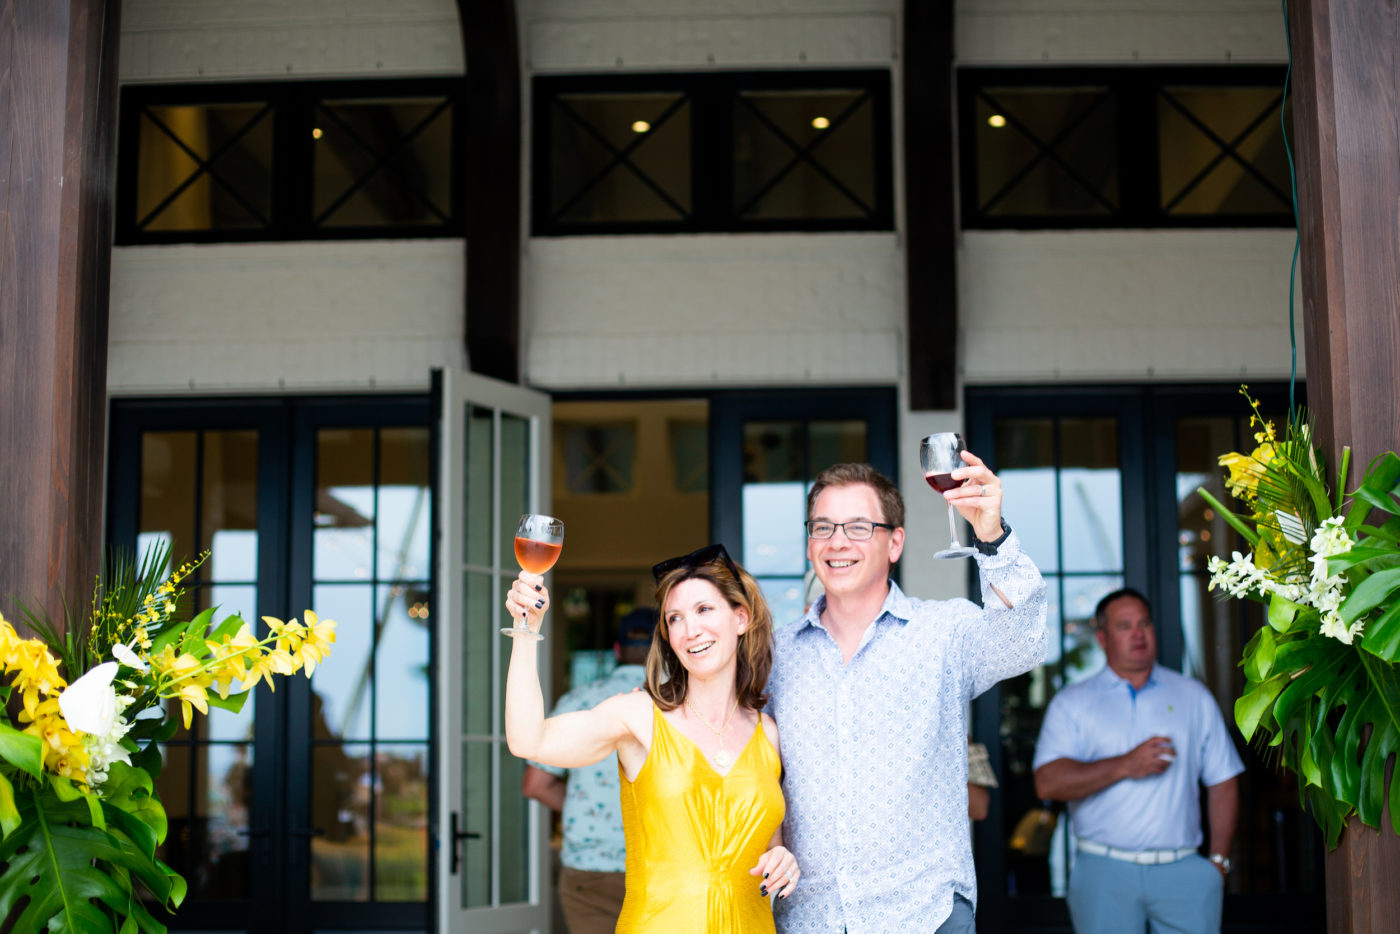 Loretta & Michael at event, holding glasses up